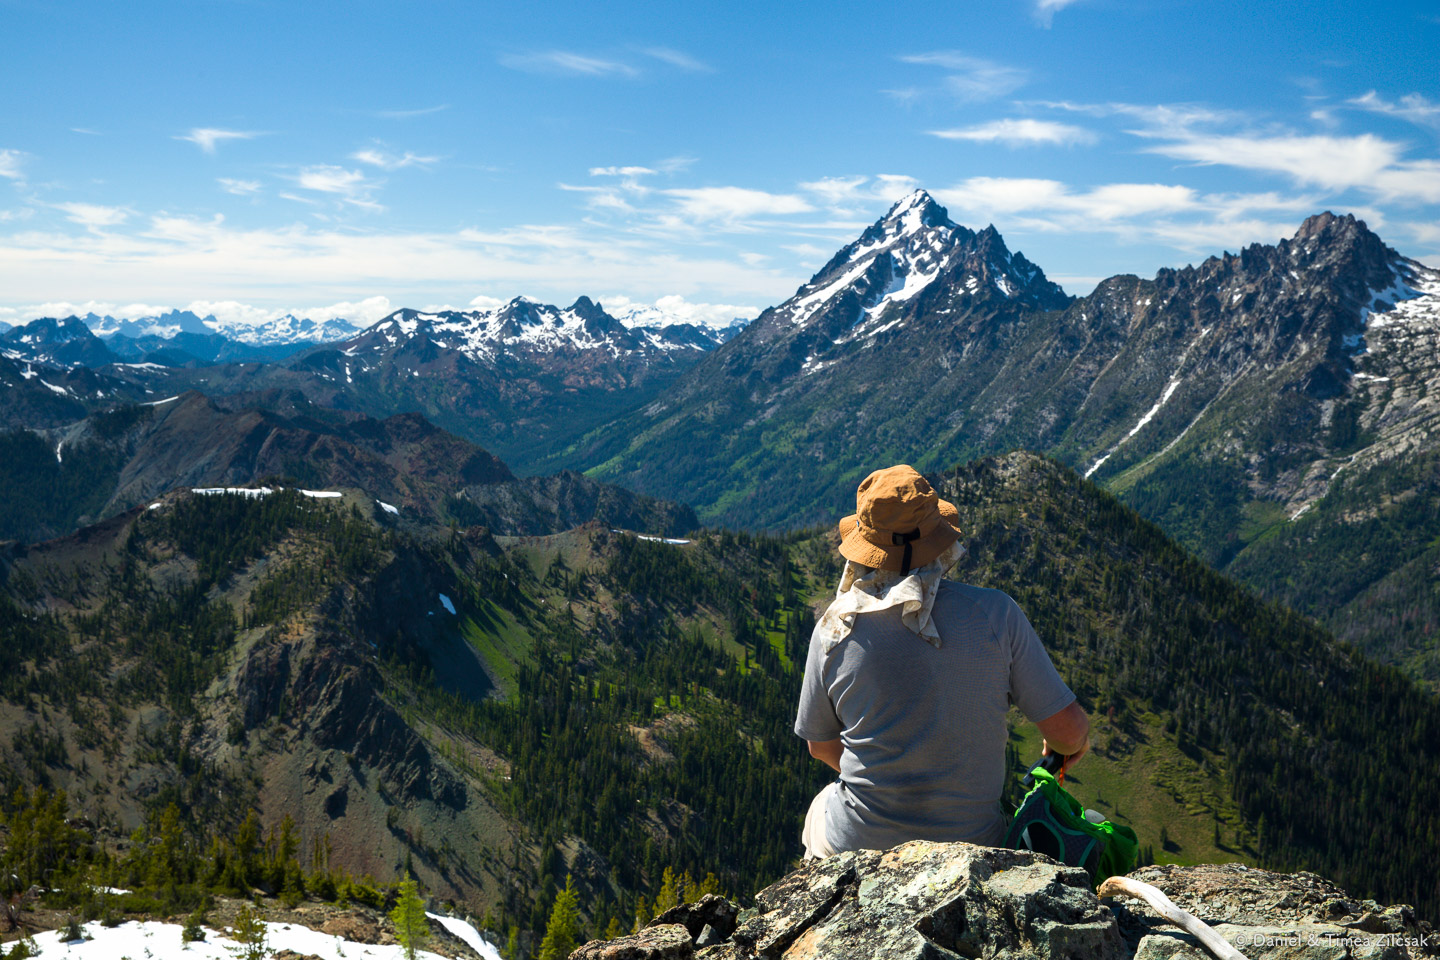 Views west from the summit of Navaho Peak, Mount Stuart is the pointy peak dominating the image